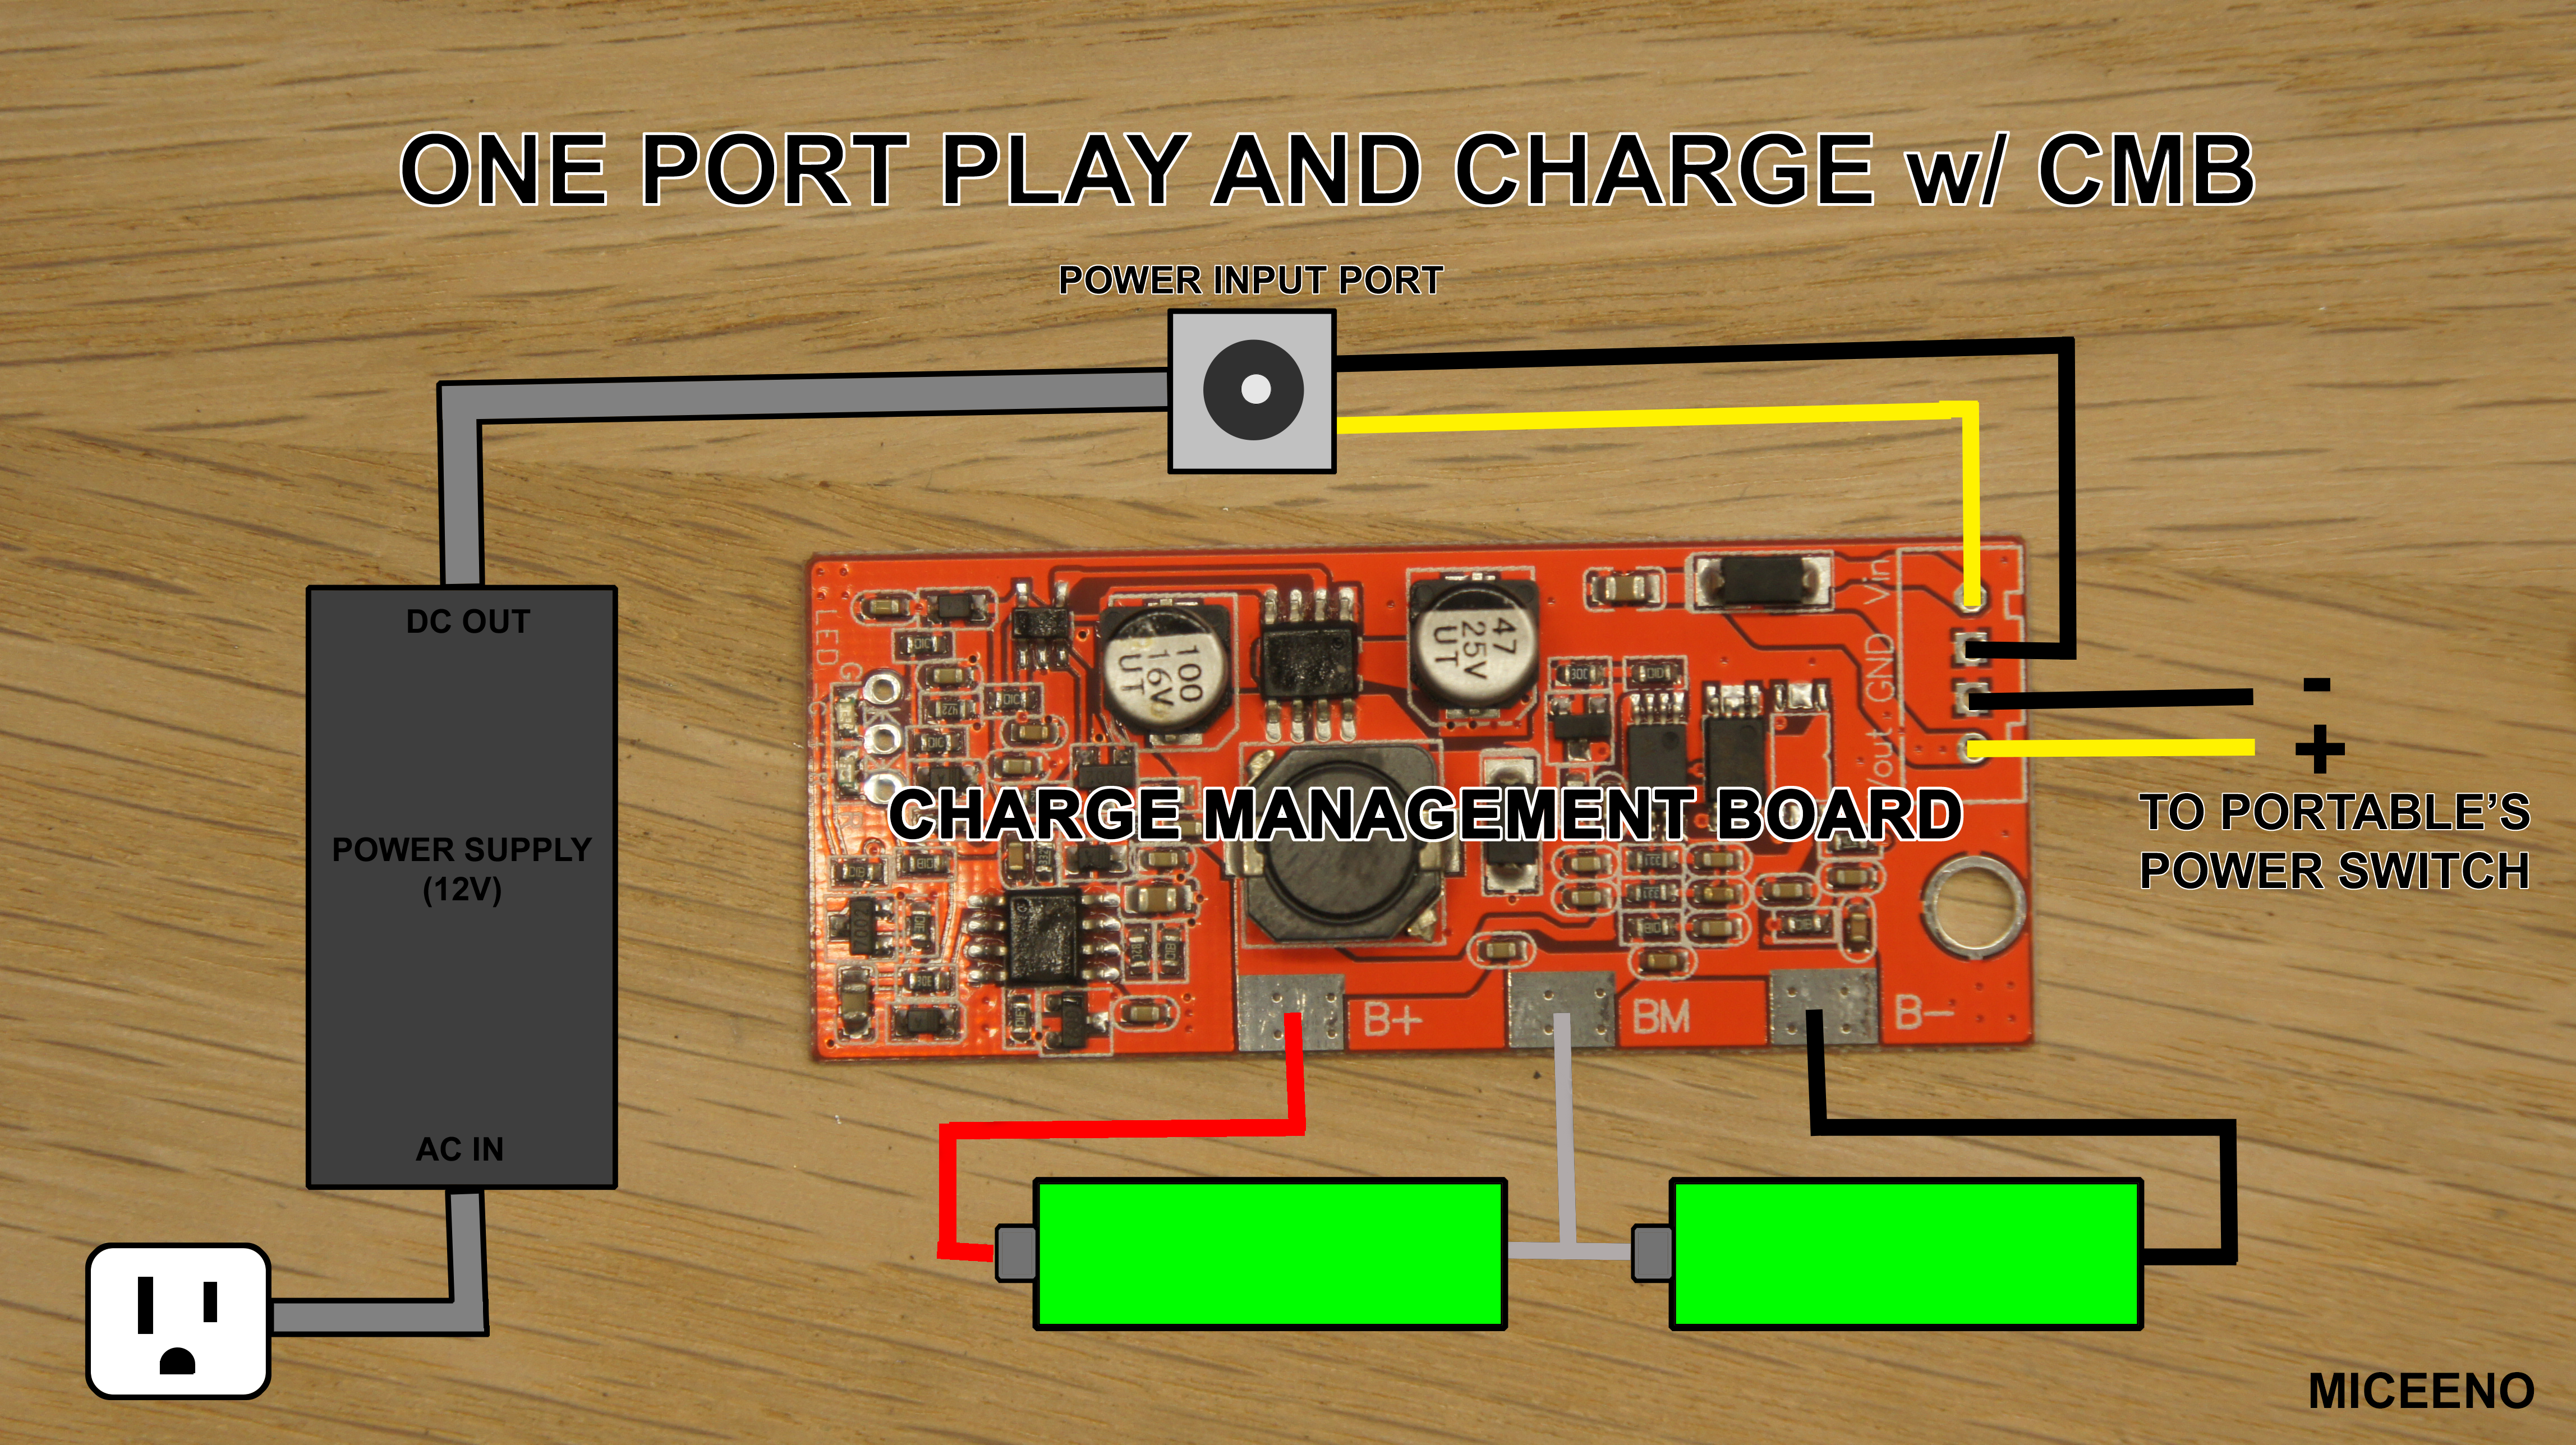 Building Batteries With 1 Port Play And Charge Bitbuilt Giving No Schottky Diodes Solid State Mosfet Switching Circuit 6 Battery One Cmb